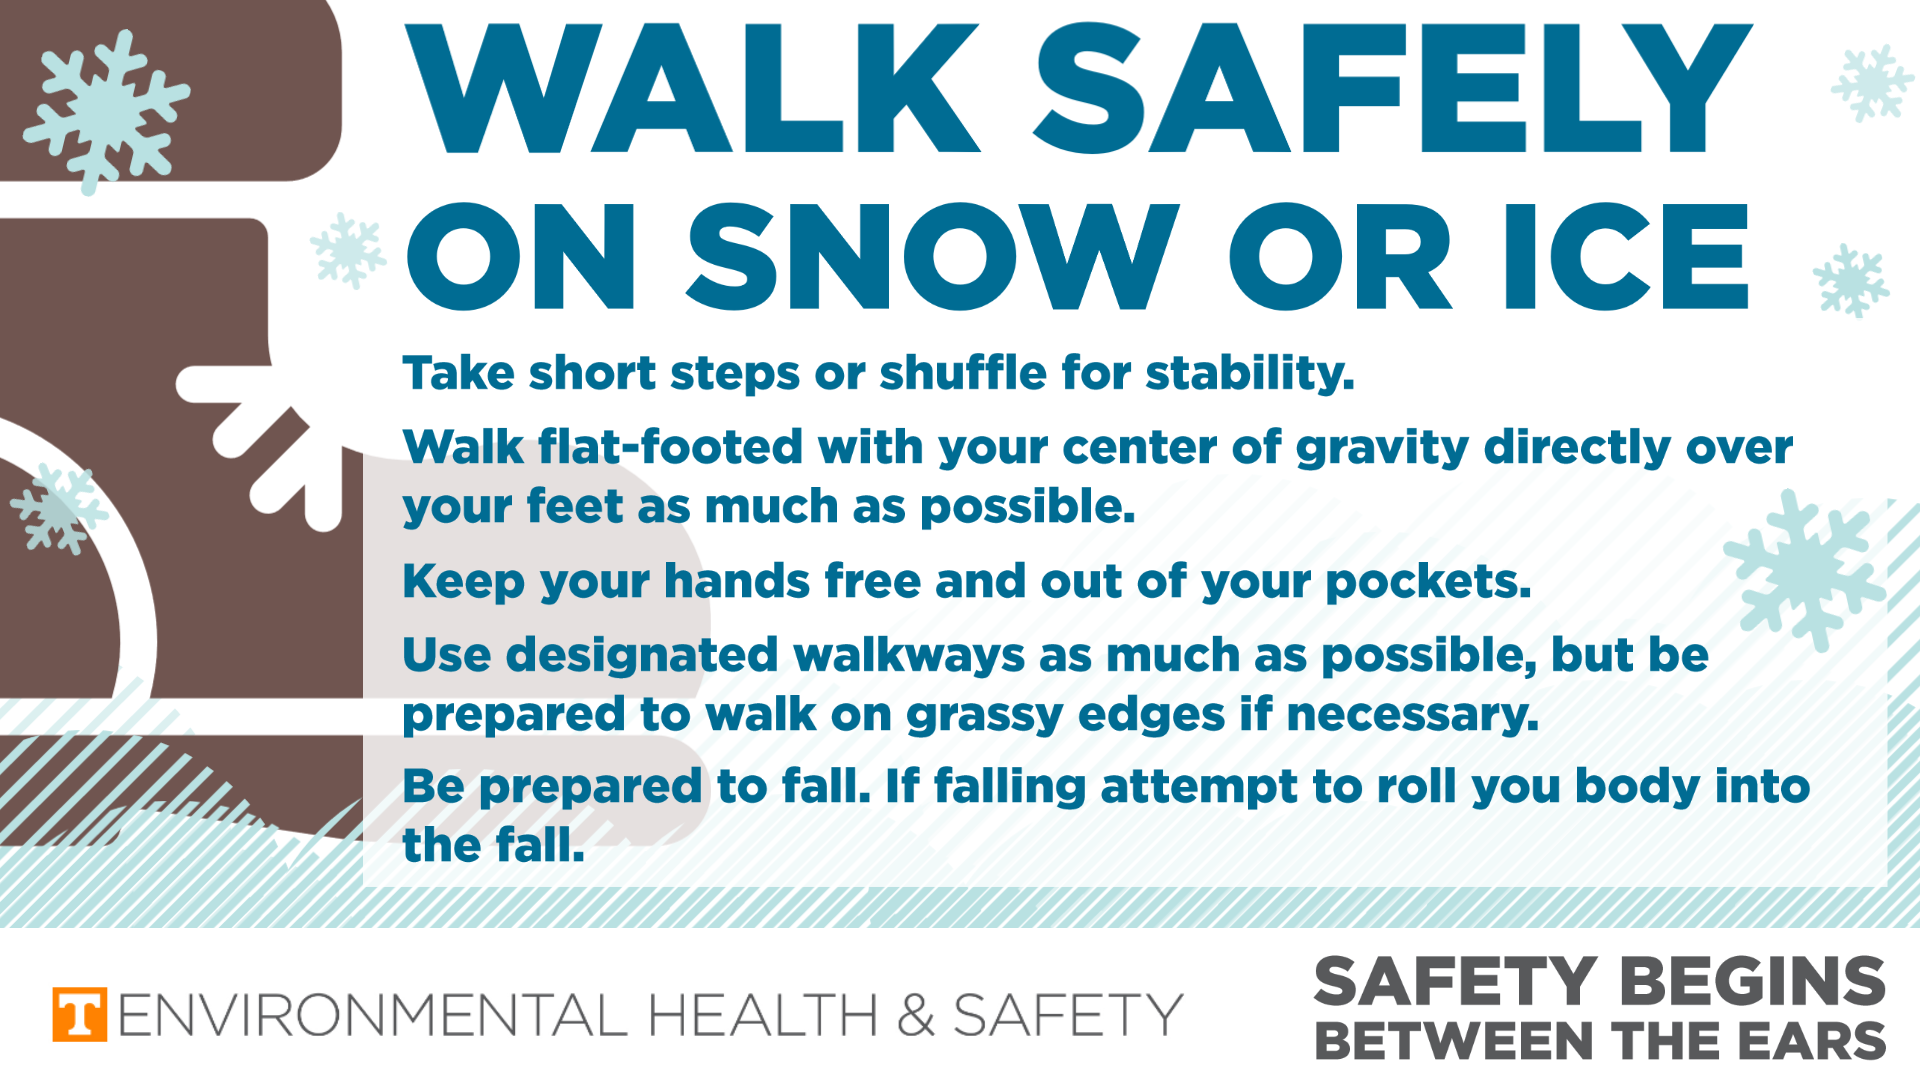 A graphic of a boot on snow with text describing walking safely on snow and ice. text is embedded in the ass